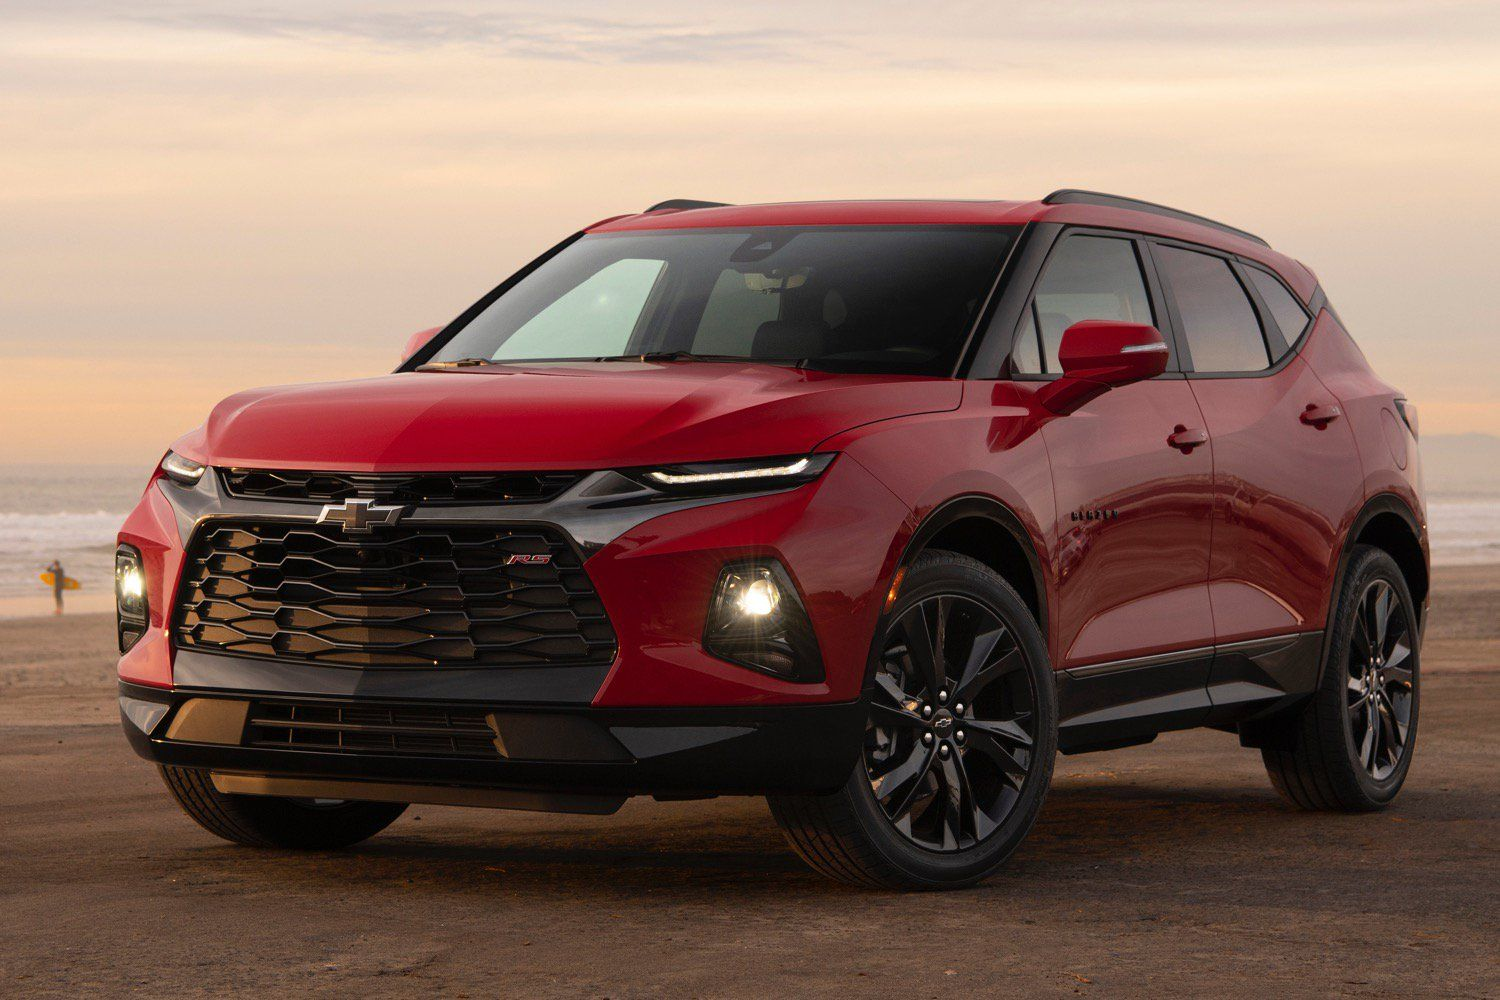 2020 The Chevy Blazer Cakhd Cakhd Chevrolet Trailblazer Chevy Suv Chevrolet Blazer